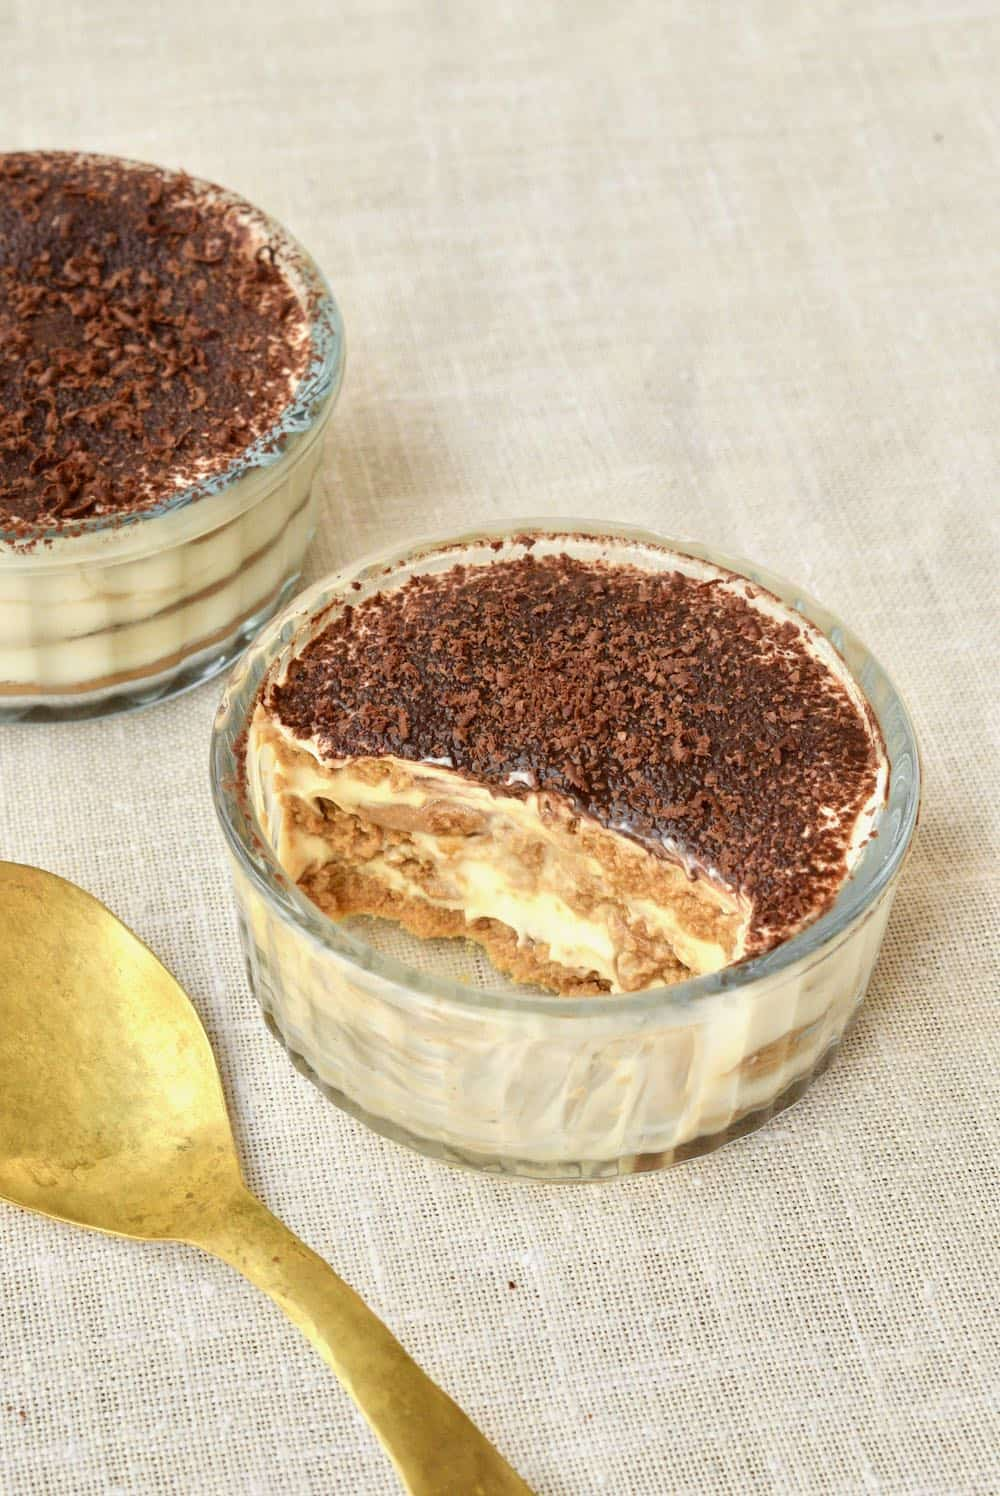 A serving of vegan tiramisu in a glass ramekin, revealing the layers inside.